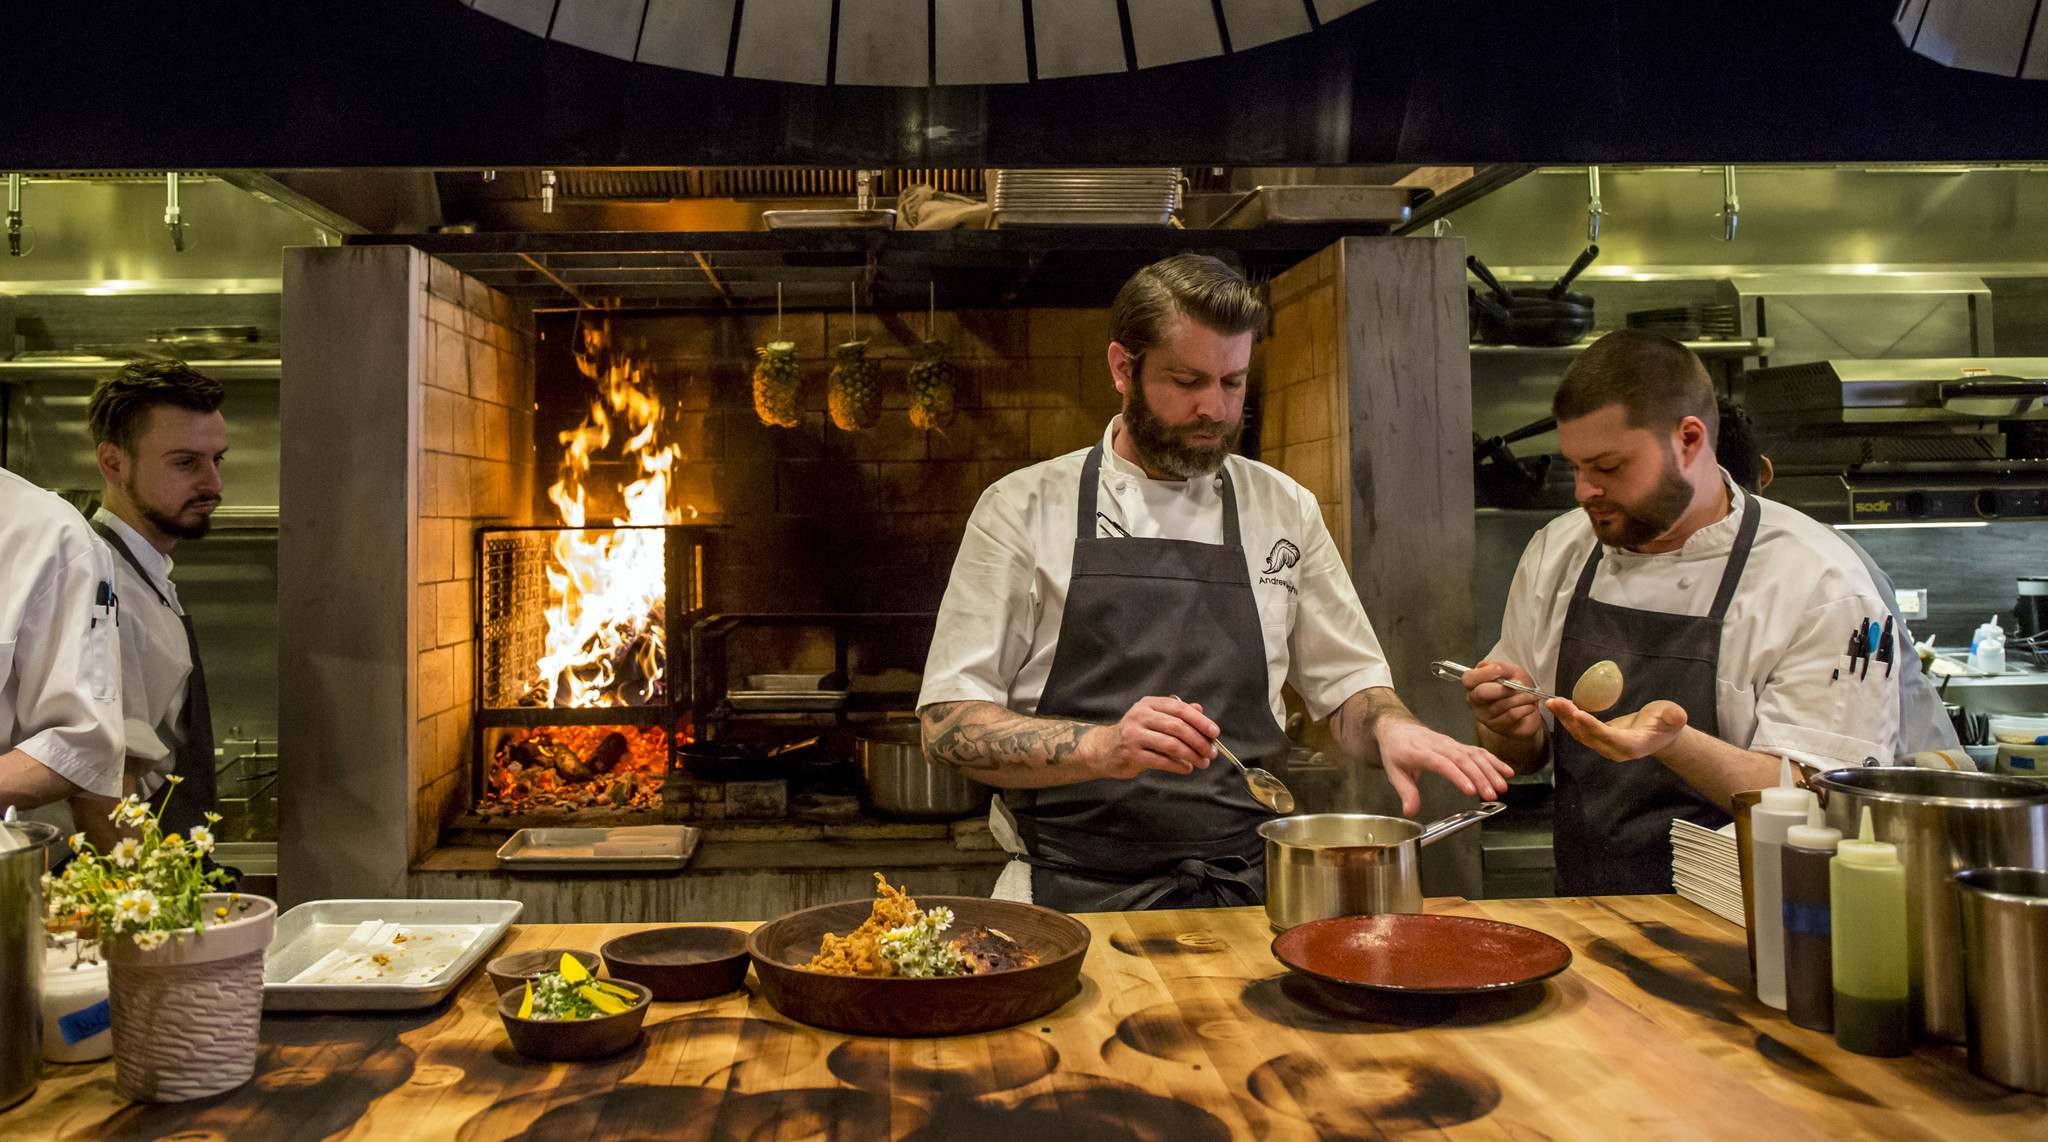 Chicago's restaurant of year, chef of year named at ...